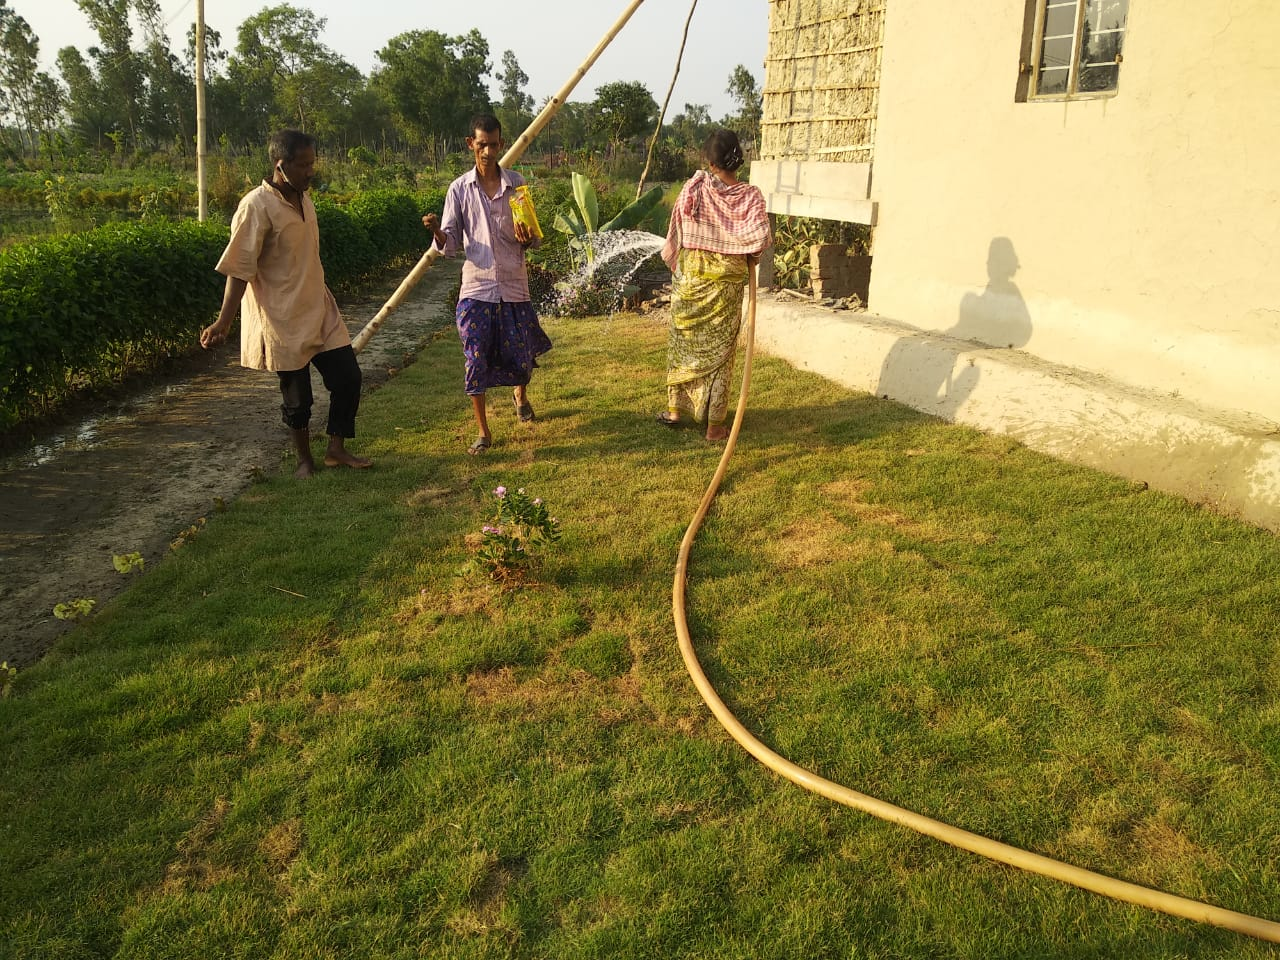 Watering Work Is Going On At Mukti Library Lawn And Model Houses